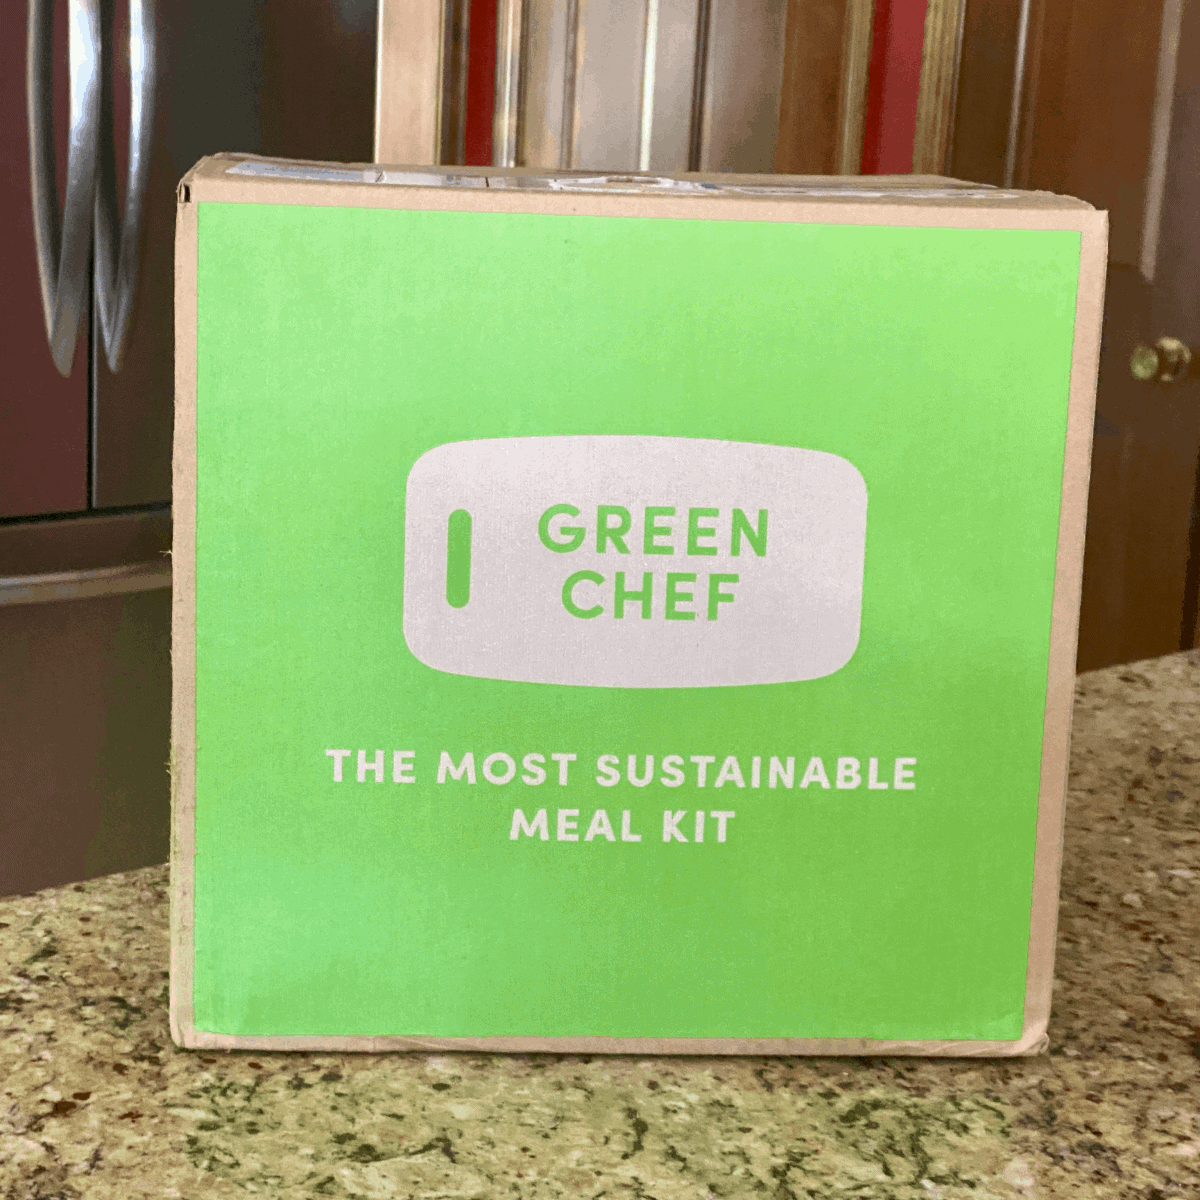 Green chef review. A green chef box on the counter.